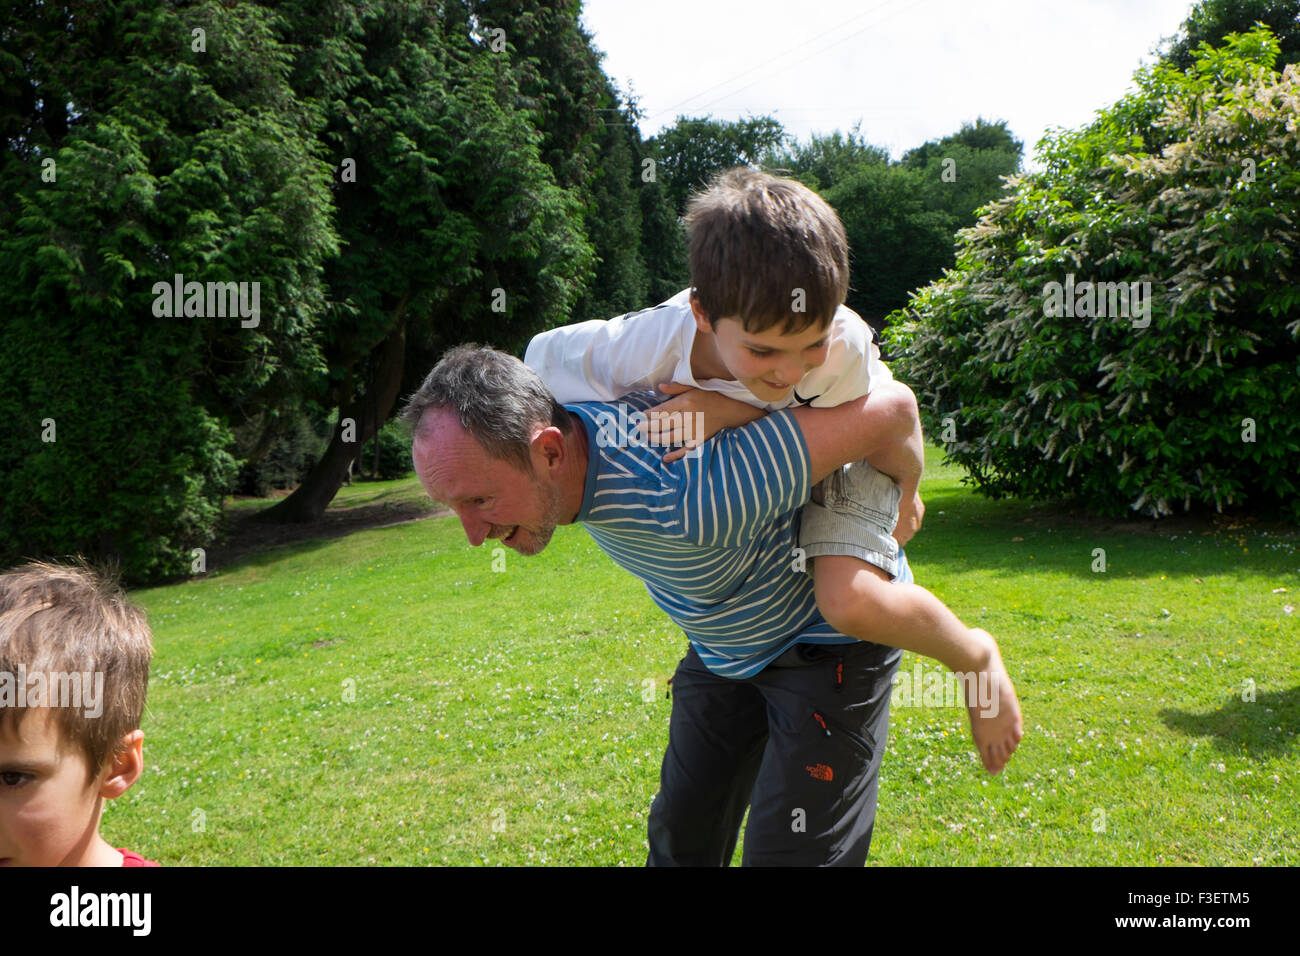 50 year old man playing with 8 year old nephew in garden, Monmouth, Powys, England, UK - Stock Image